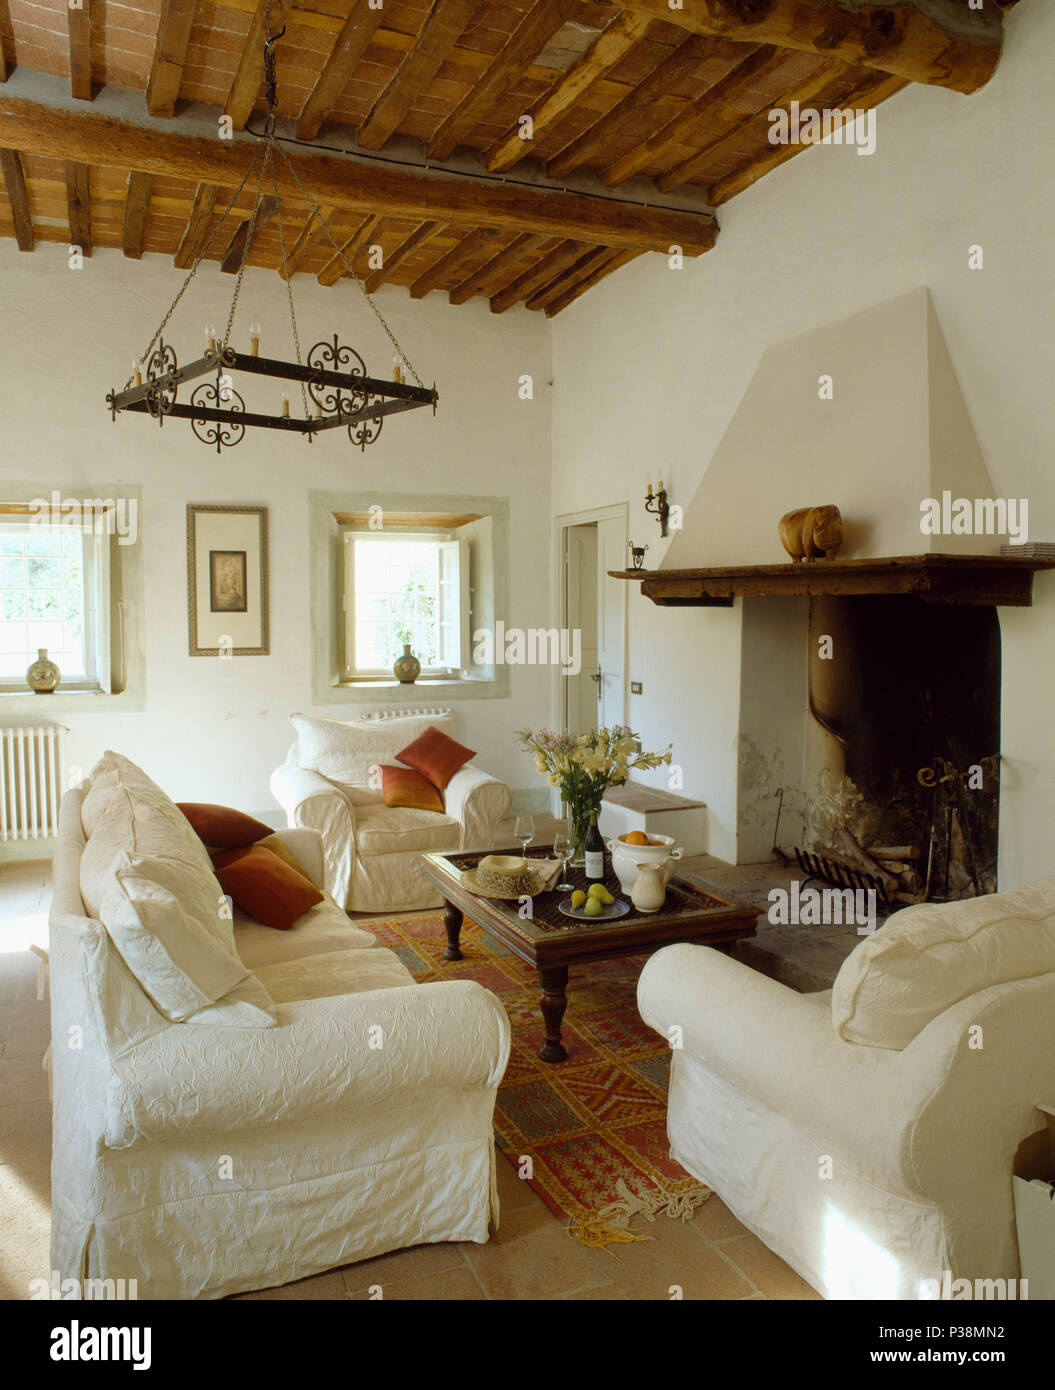 White Loose Covers On Sofa And Armchairs In Rustic Tuscan